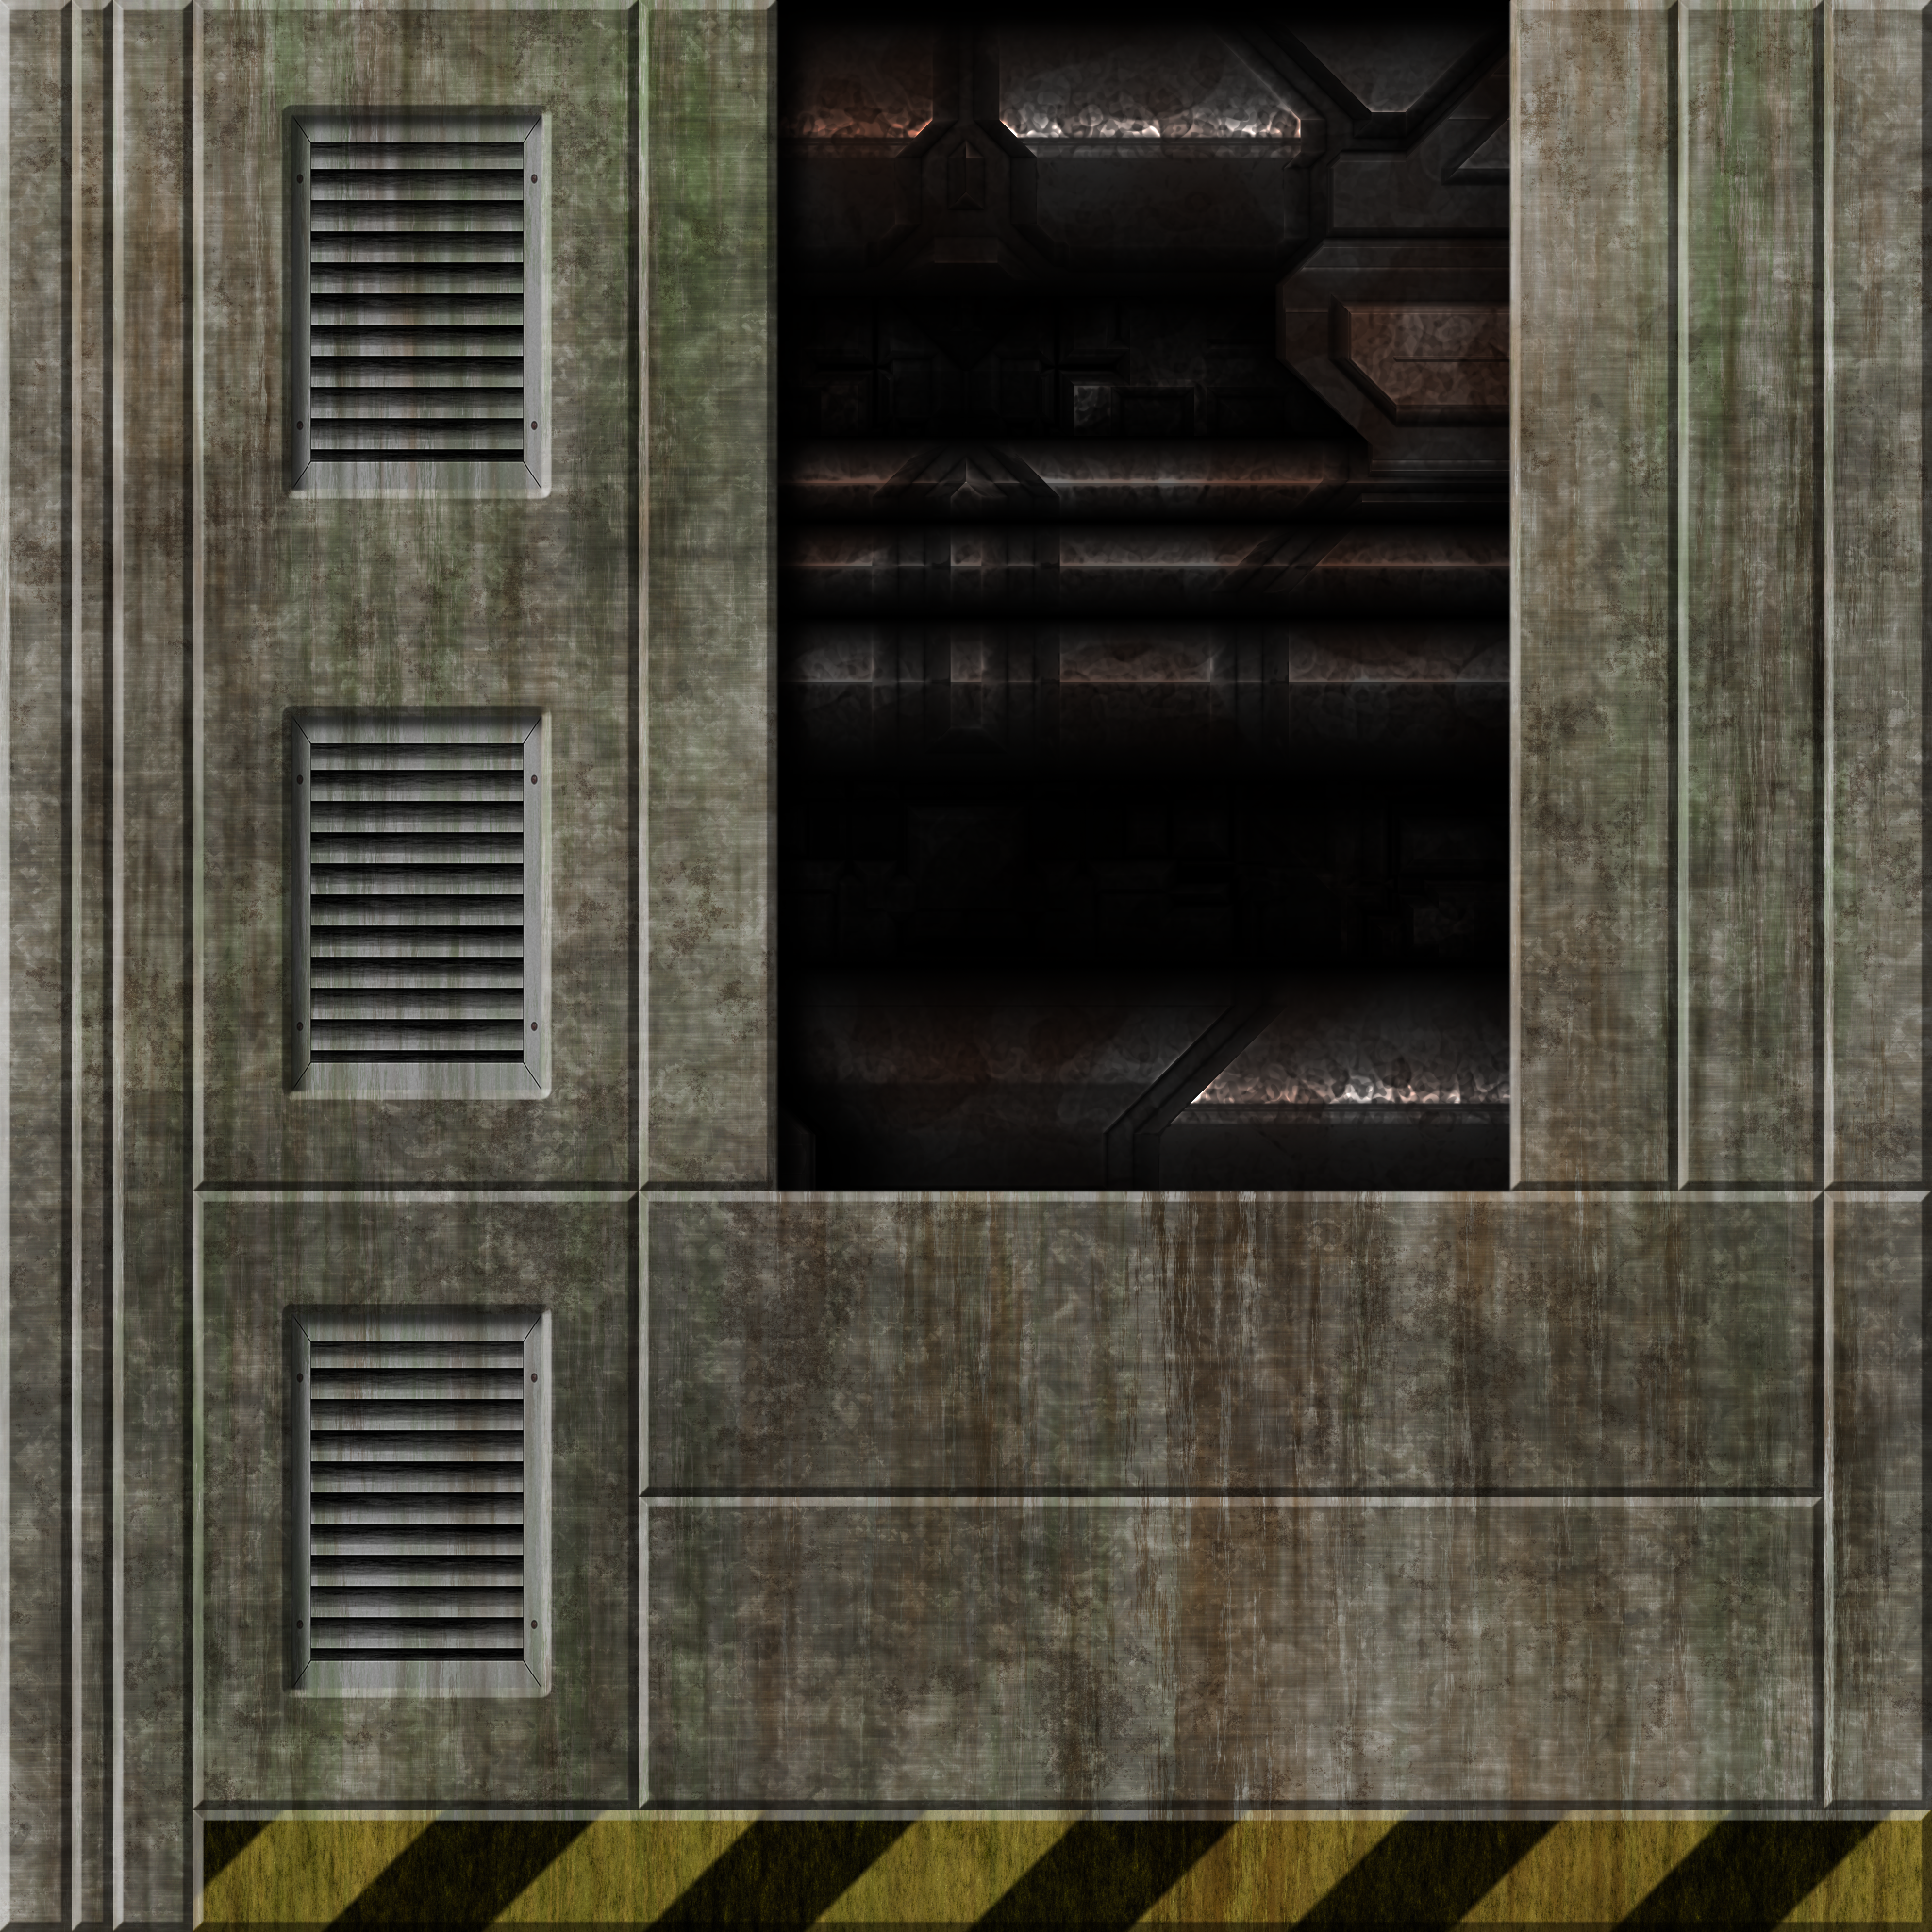 Cement Wall 2 Remake by Hoover1979